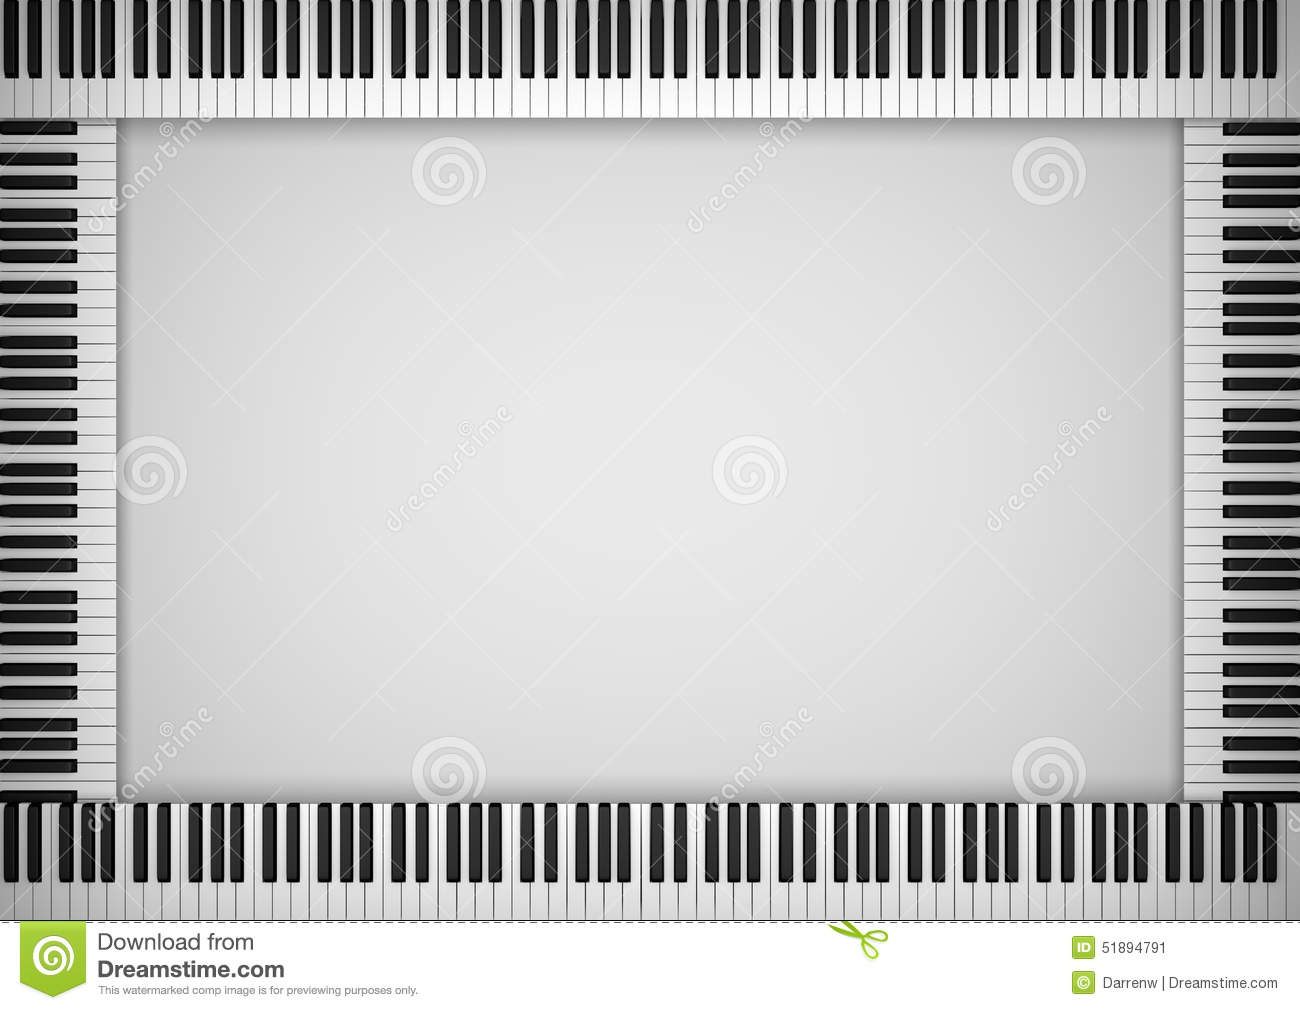 Piano Keyboard Frame